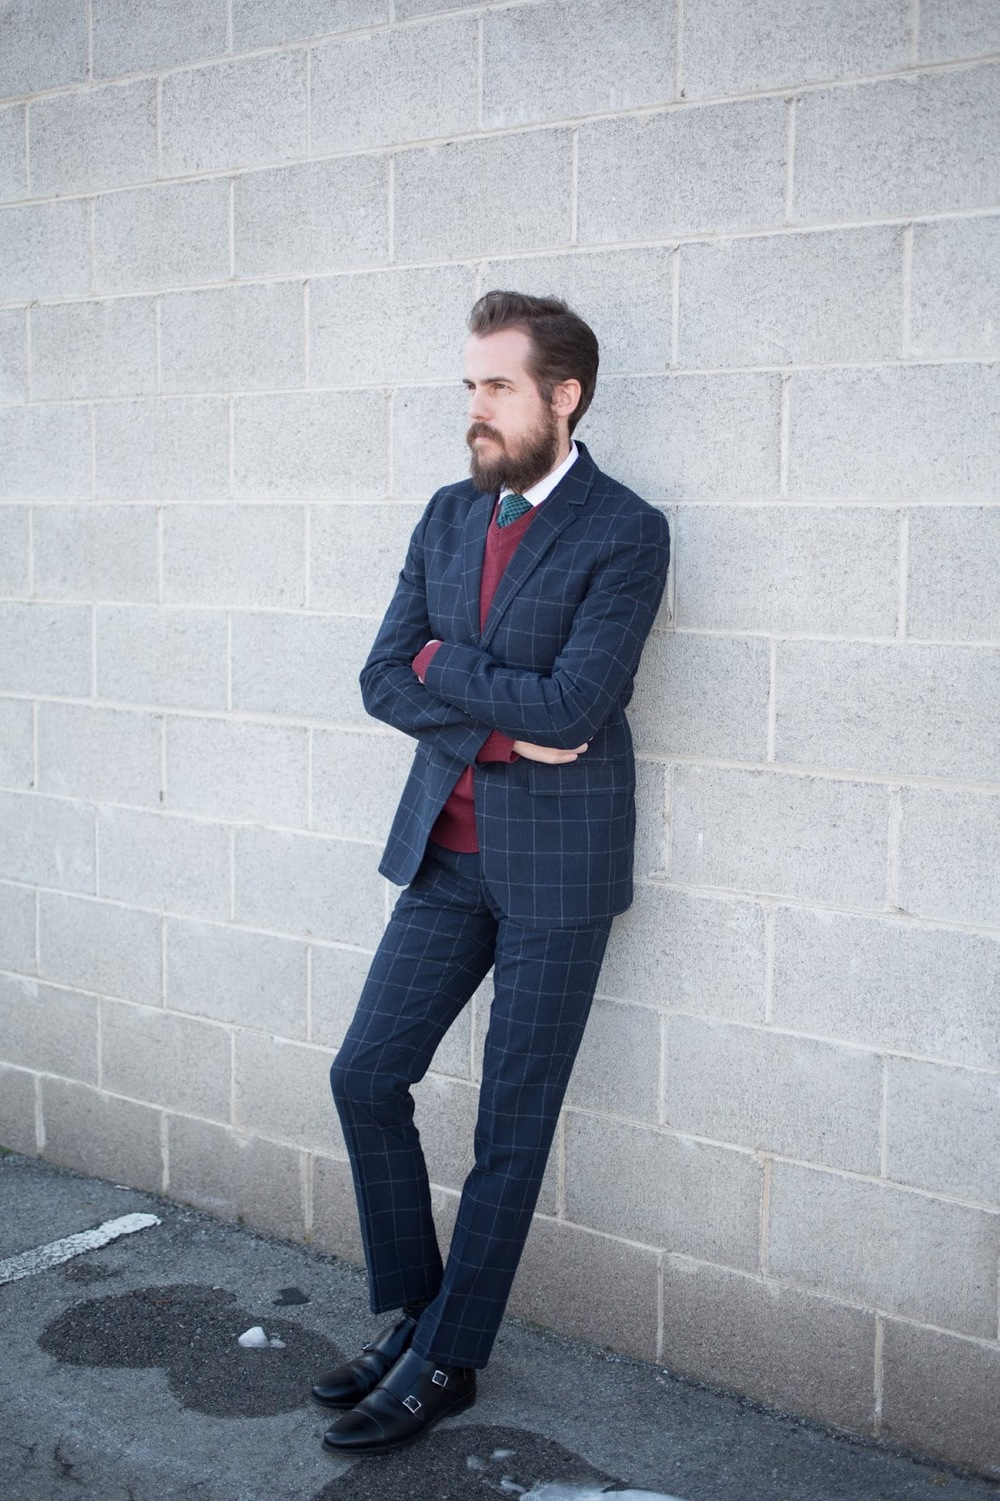 topman_navy_window_pane_suit_menswear_fashion_blog-2.jpg